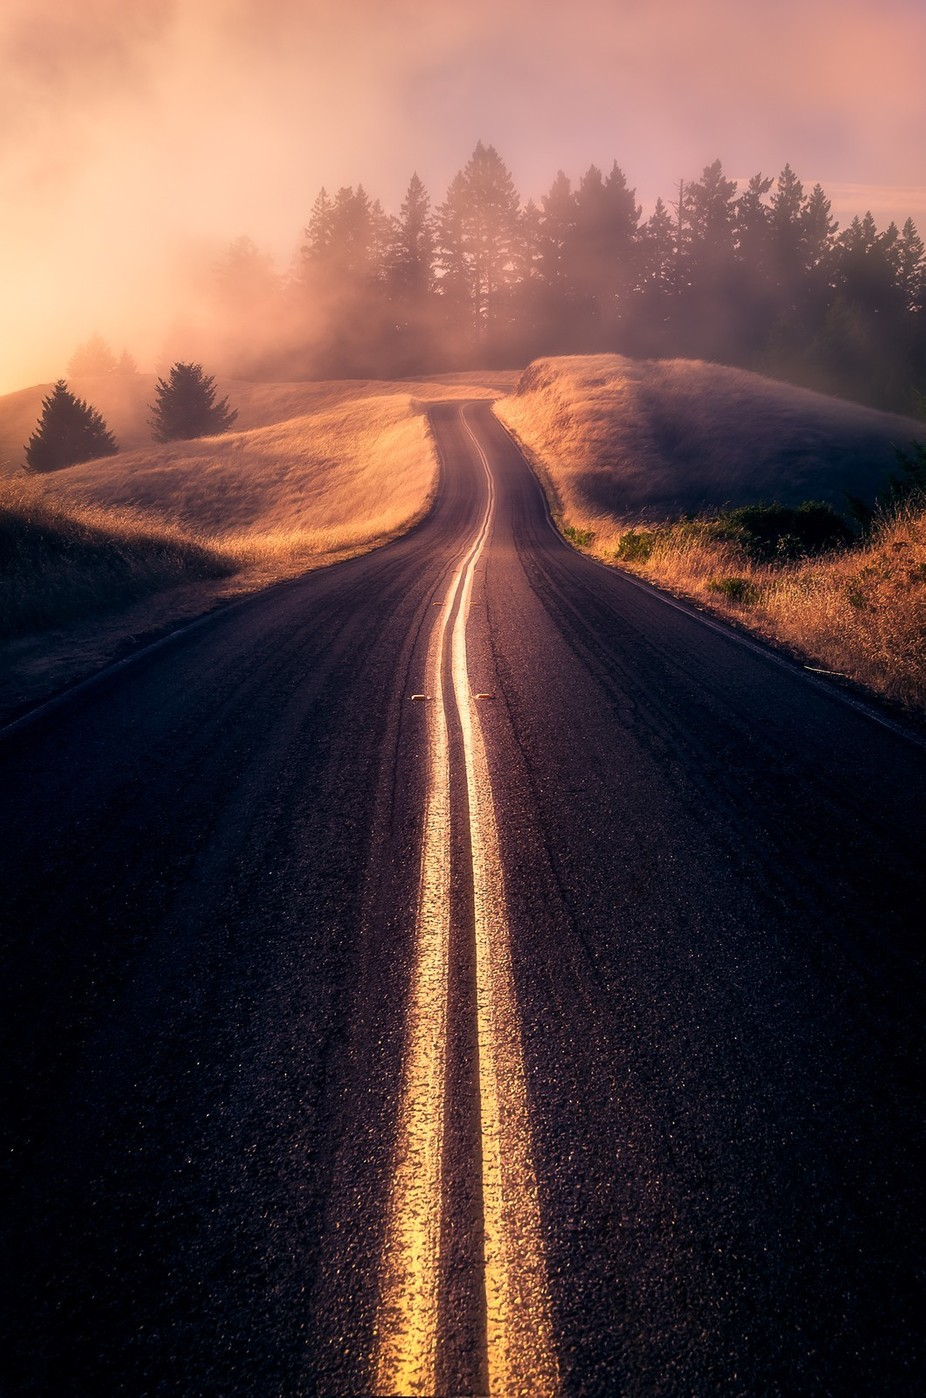 Golden Road by BastianHoppe - Compositions 101 Photo Contest vol4